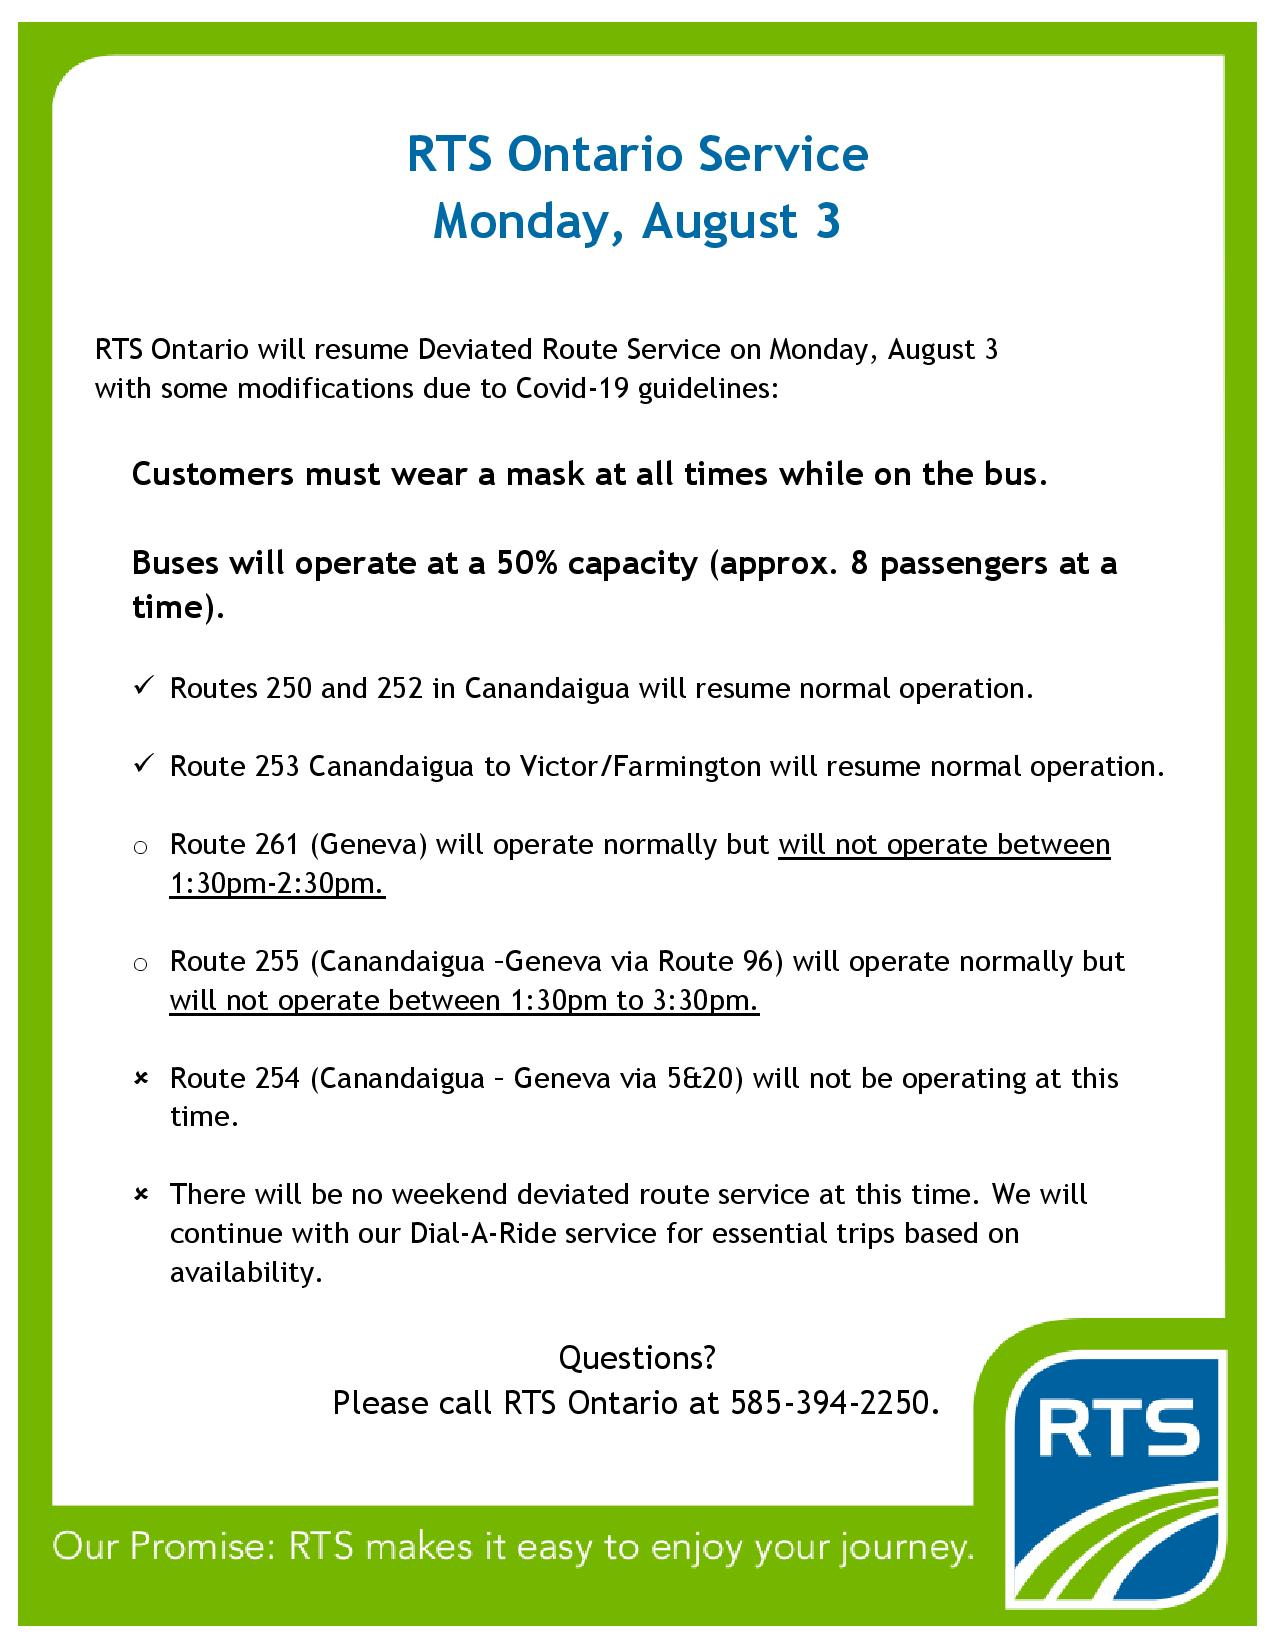 RTS Ontario Service 8-3-20-page-001